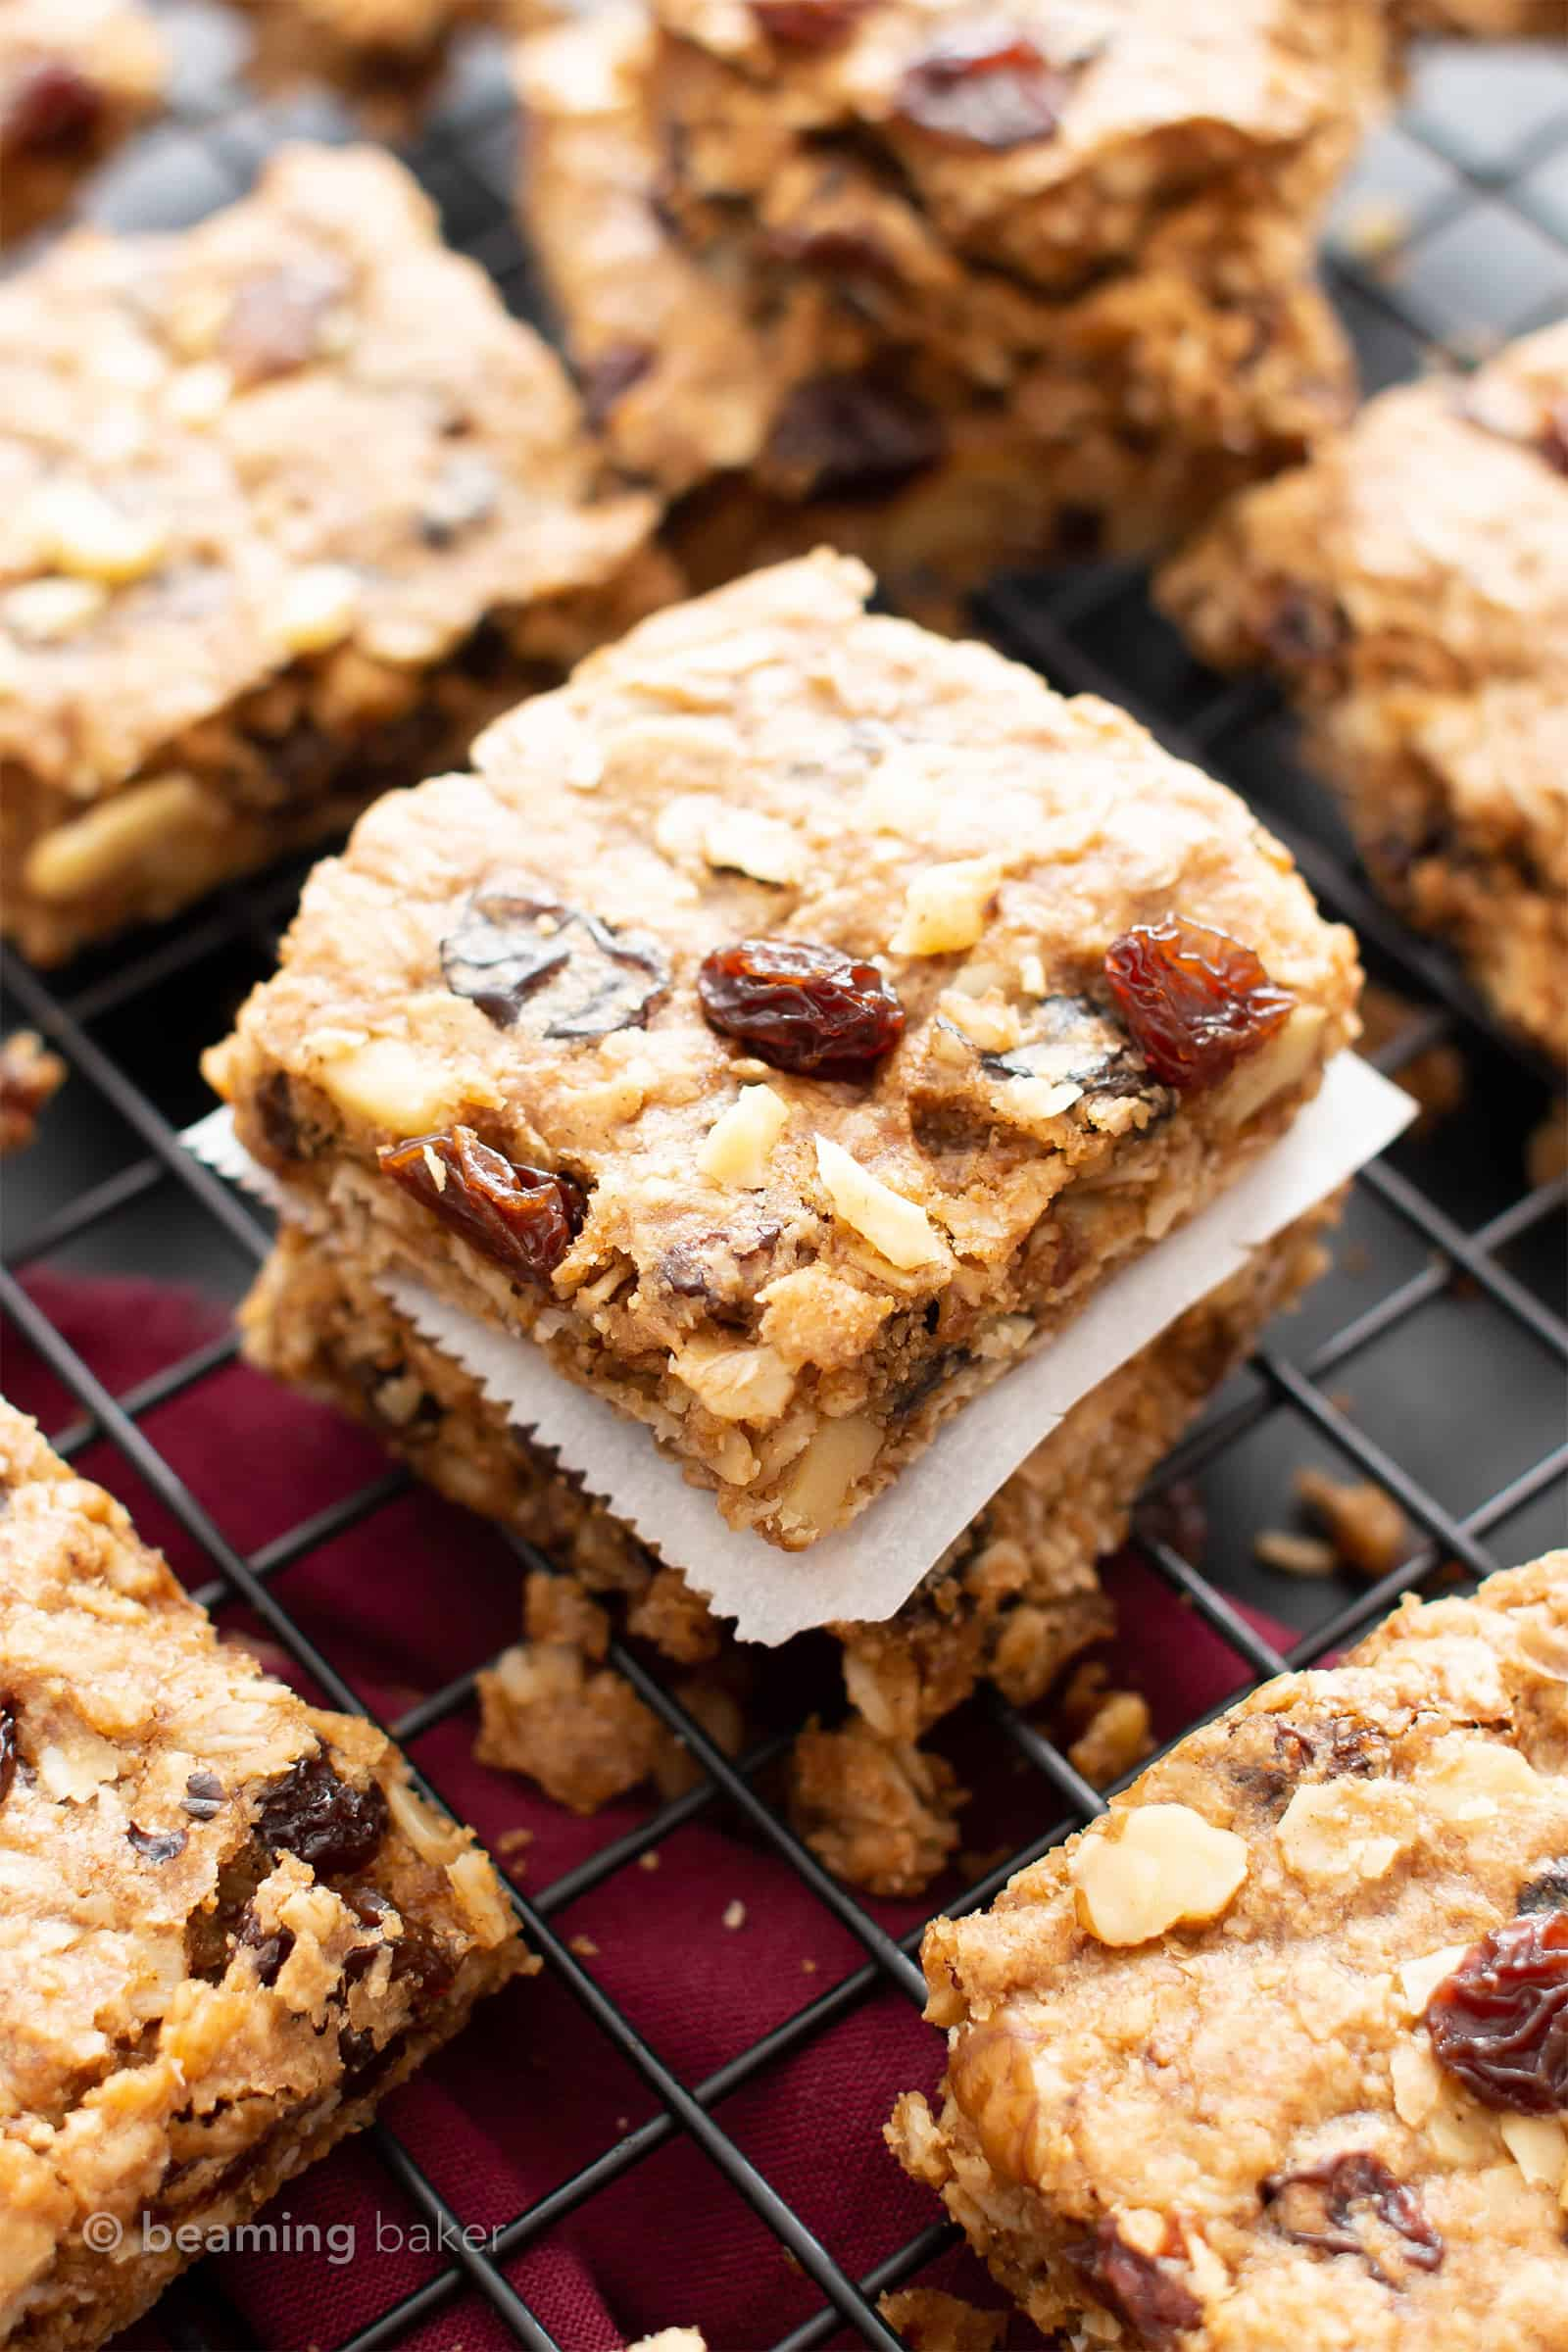 The BEST Vegan Oatmeal Raisin Bars Recipe: chewy centers, crispy edges, packed with raisins & oats! The ultimate gluten free oatmeal cookie bars—healthy, homemade & easy! #Oatmeal #Vegan #GlutenFree #Cookies | Recipe at BeamingBaker.com